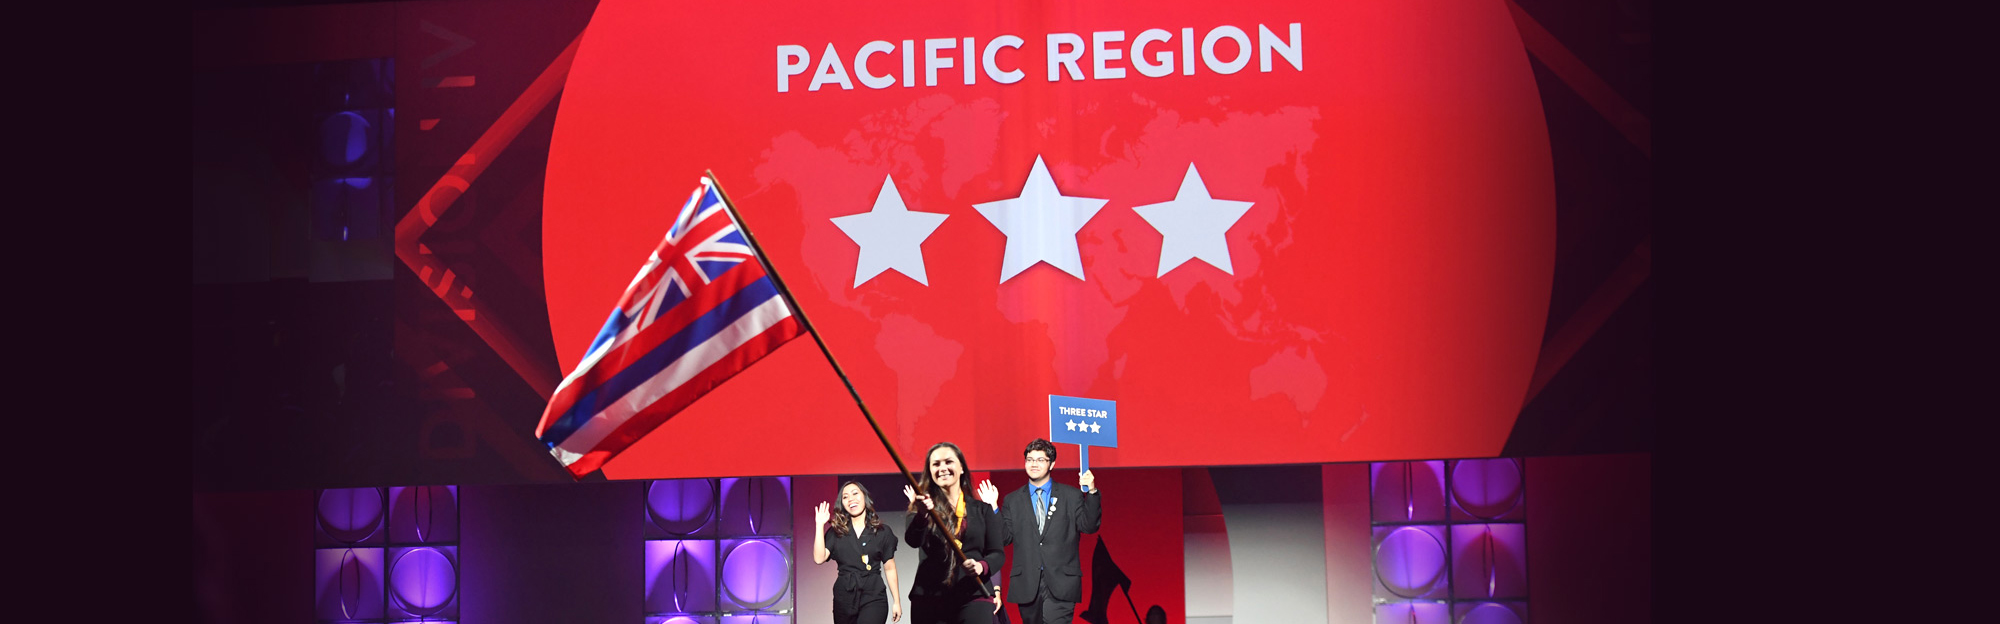 picture of the Pacific region at convention